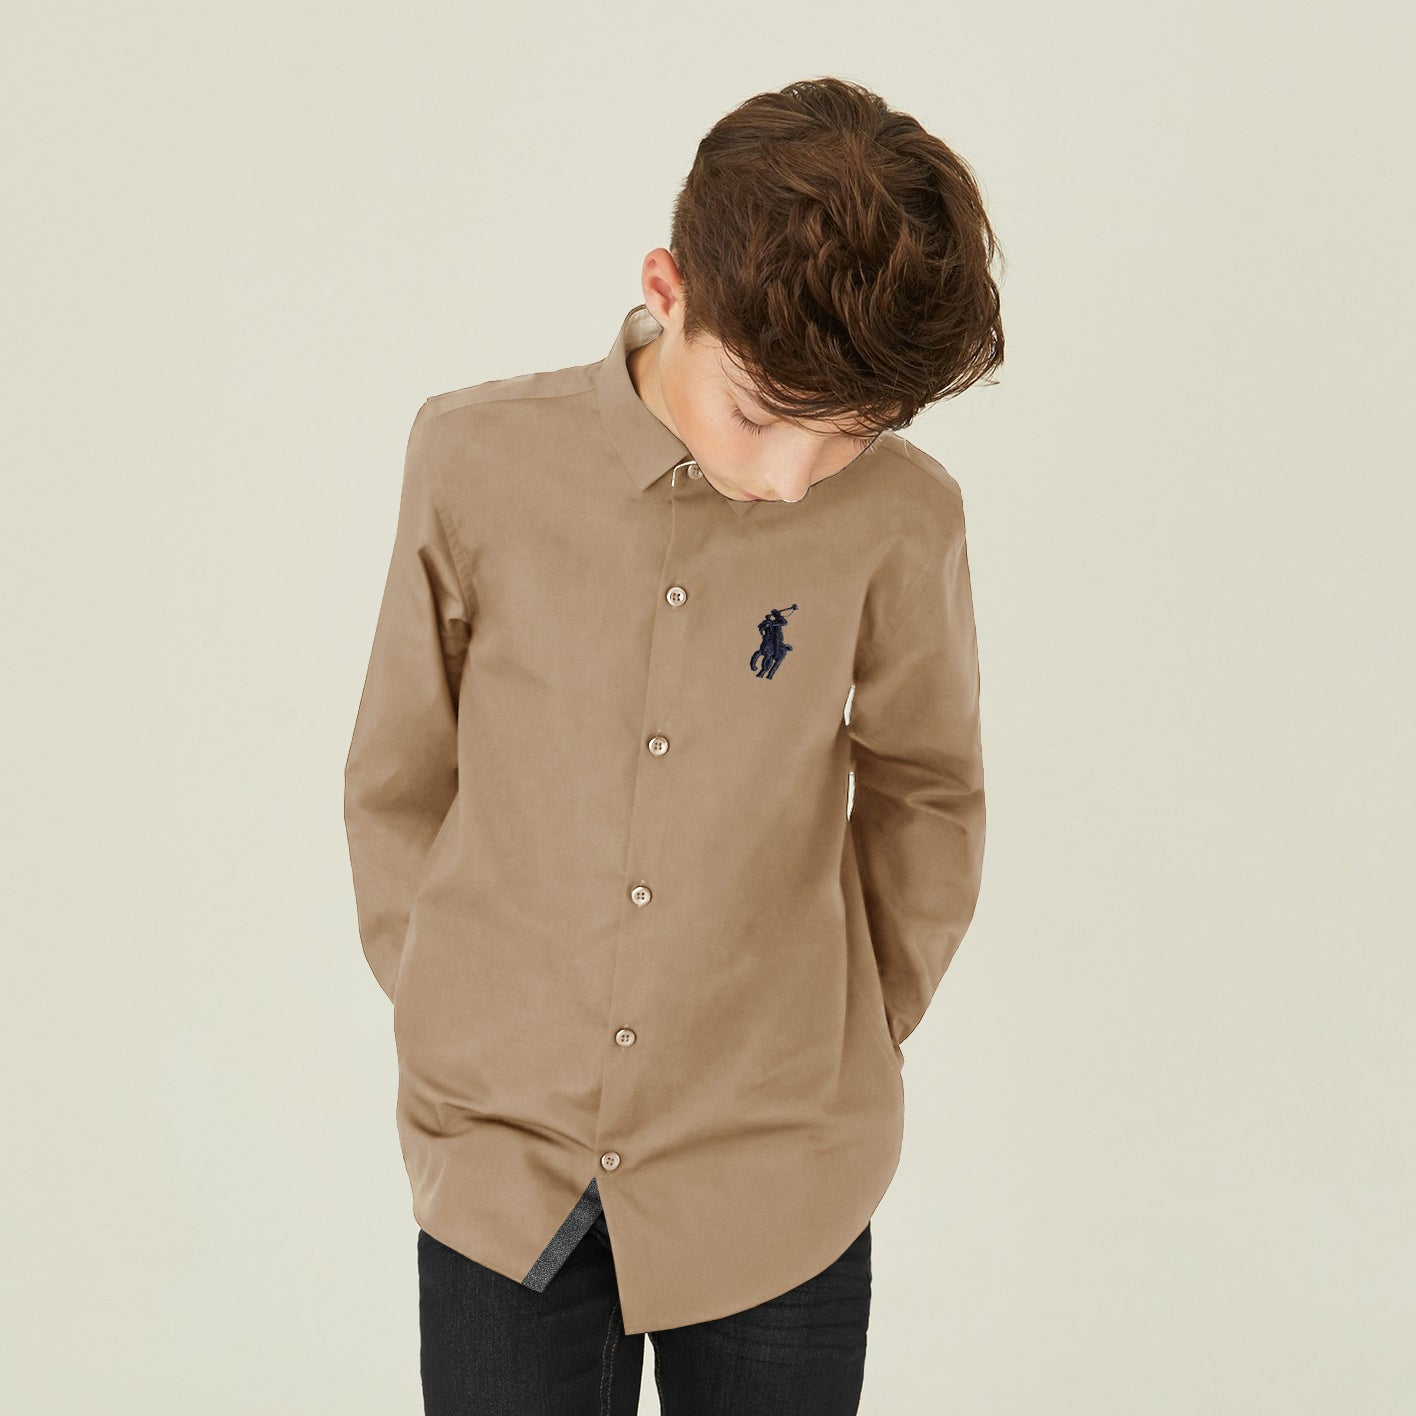 U.S Polo Premium Slim Fit Casual Shirt For Boys-Khaki-NA12002